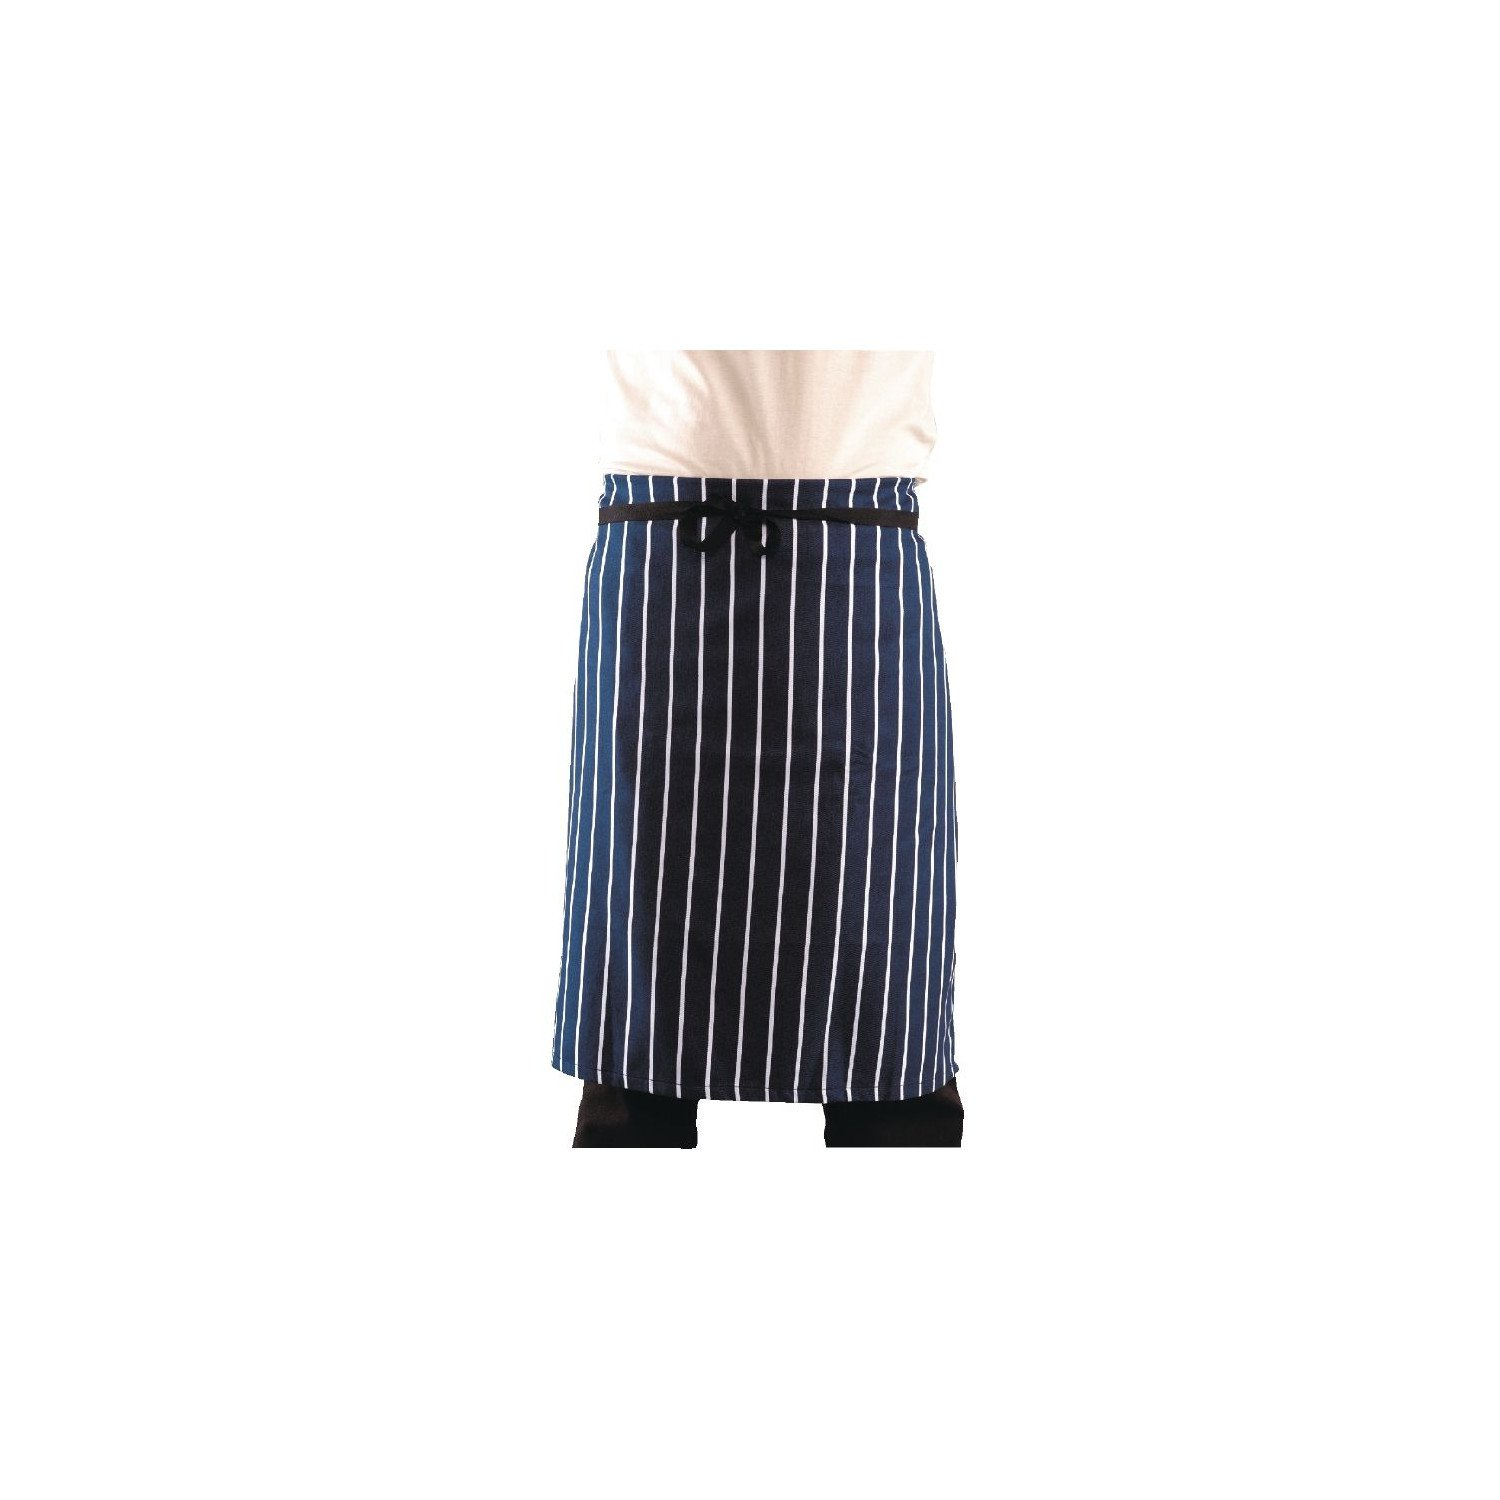 Tablier de serveur rayé teint en fil XL WHITES CHEFS APPAREL Tabliers